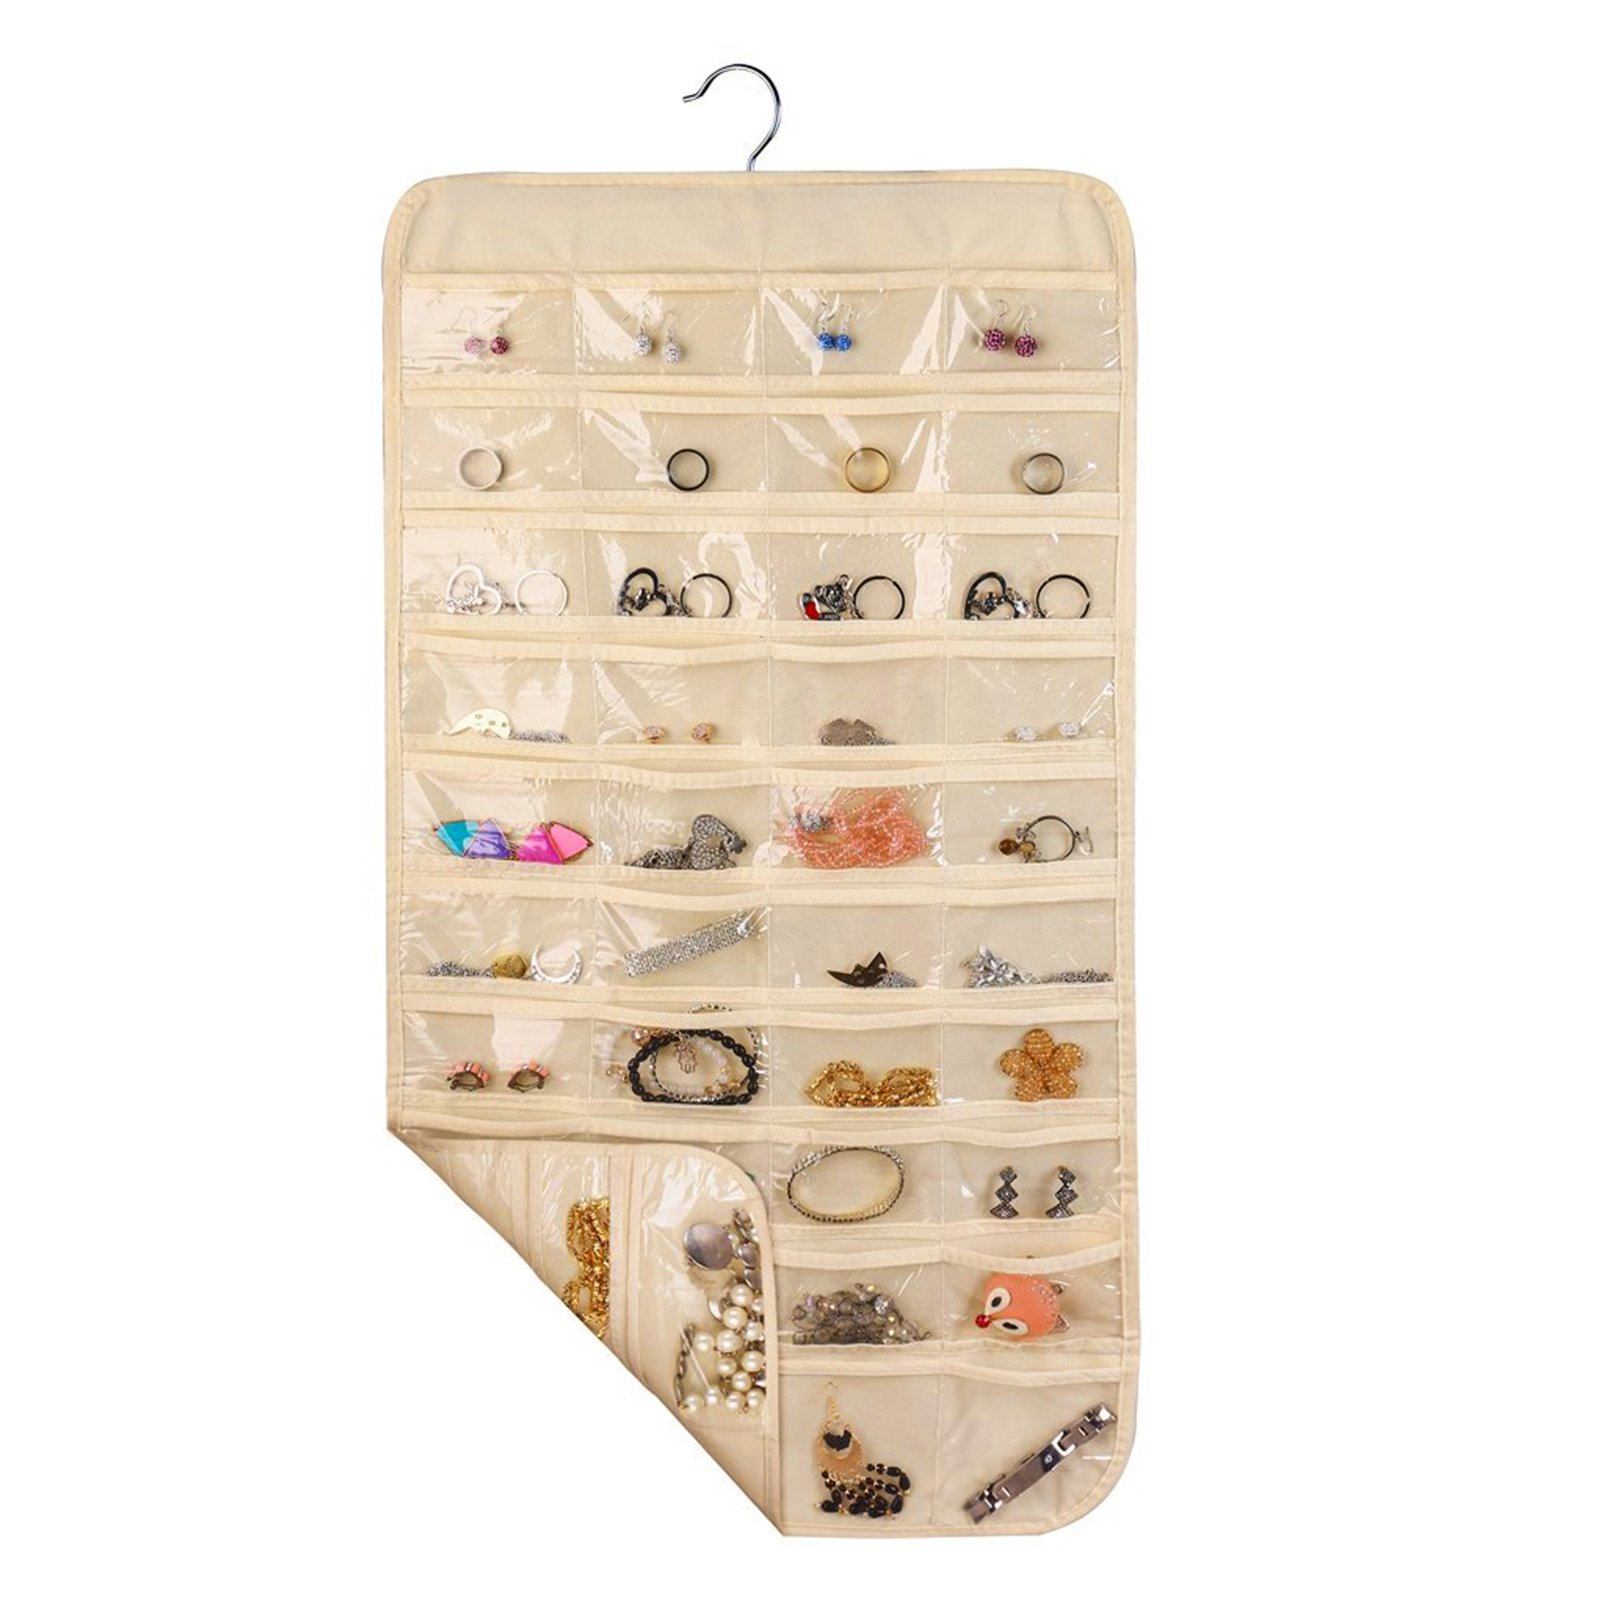 LinkStyle Hanging Jewelry Organizer Closet Wall Jewelry Holder with 80 Pockets, 2 Sides